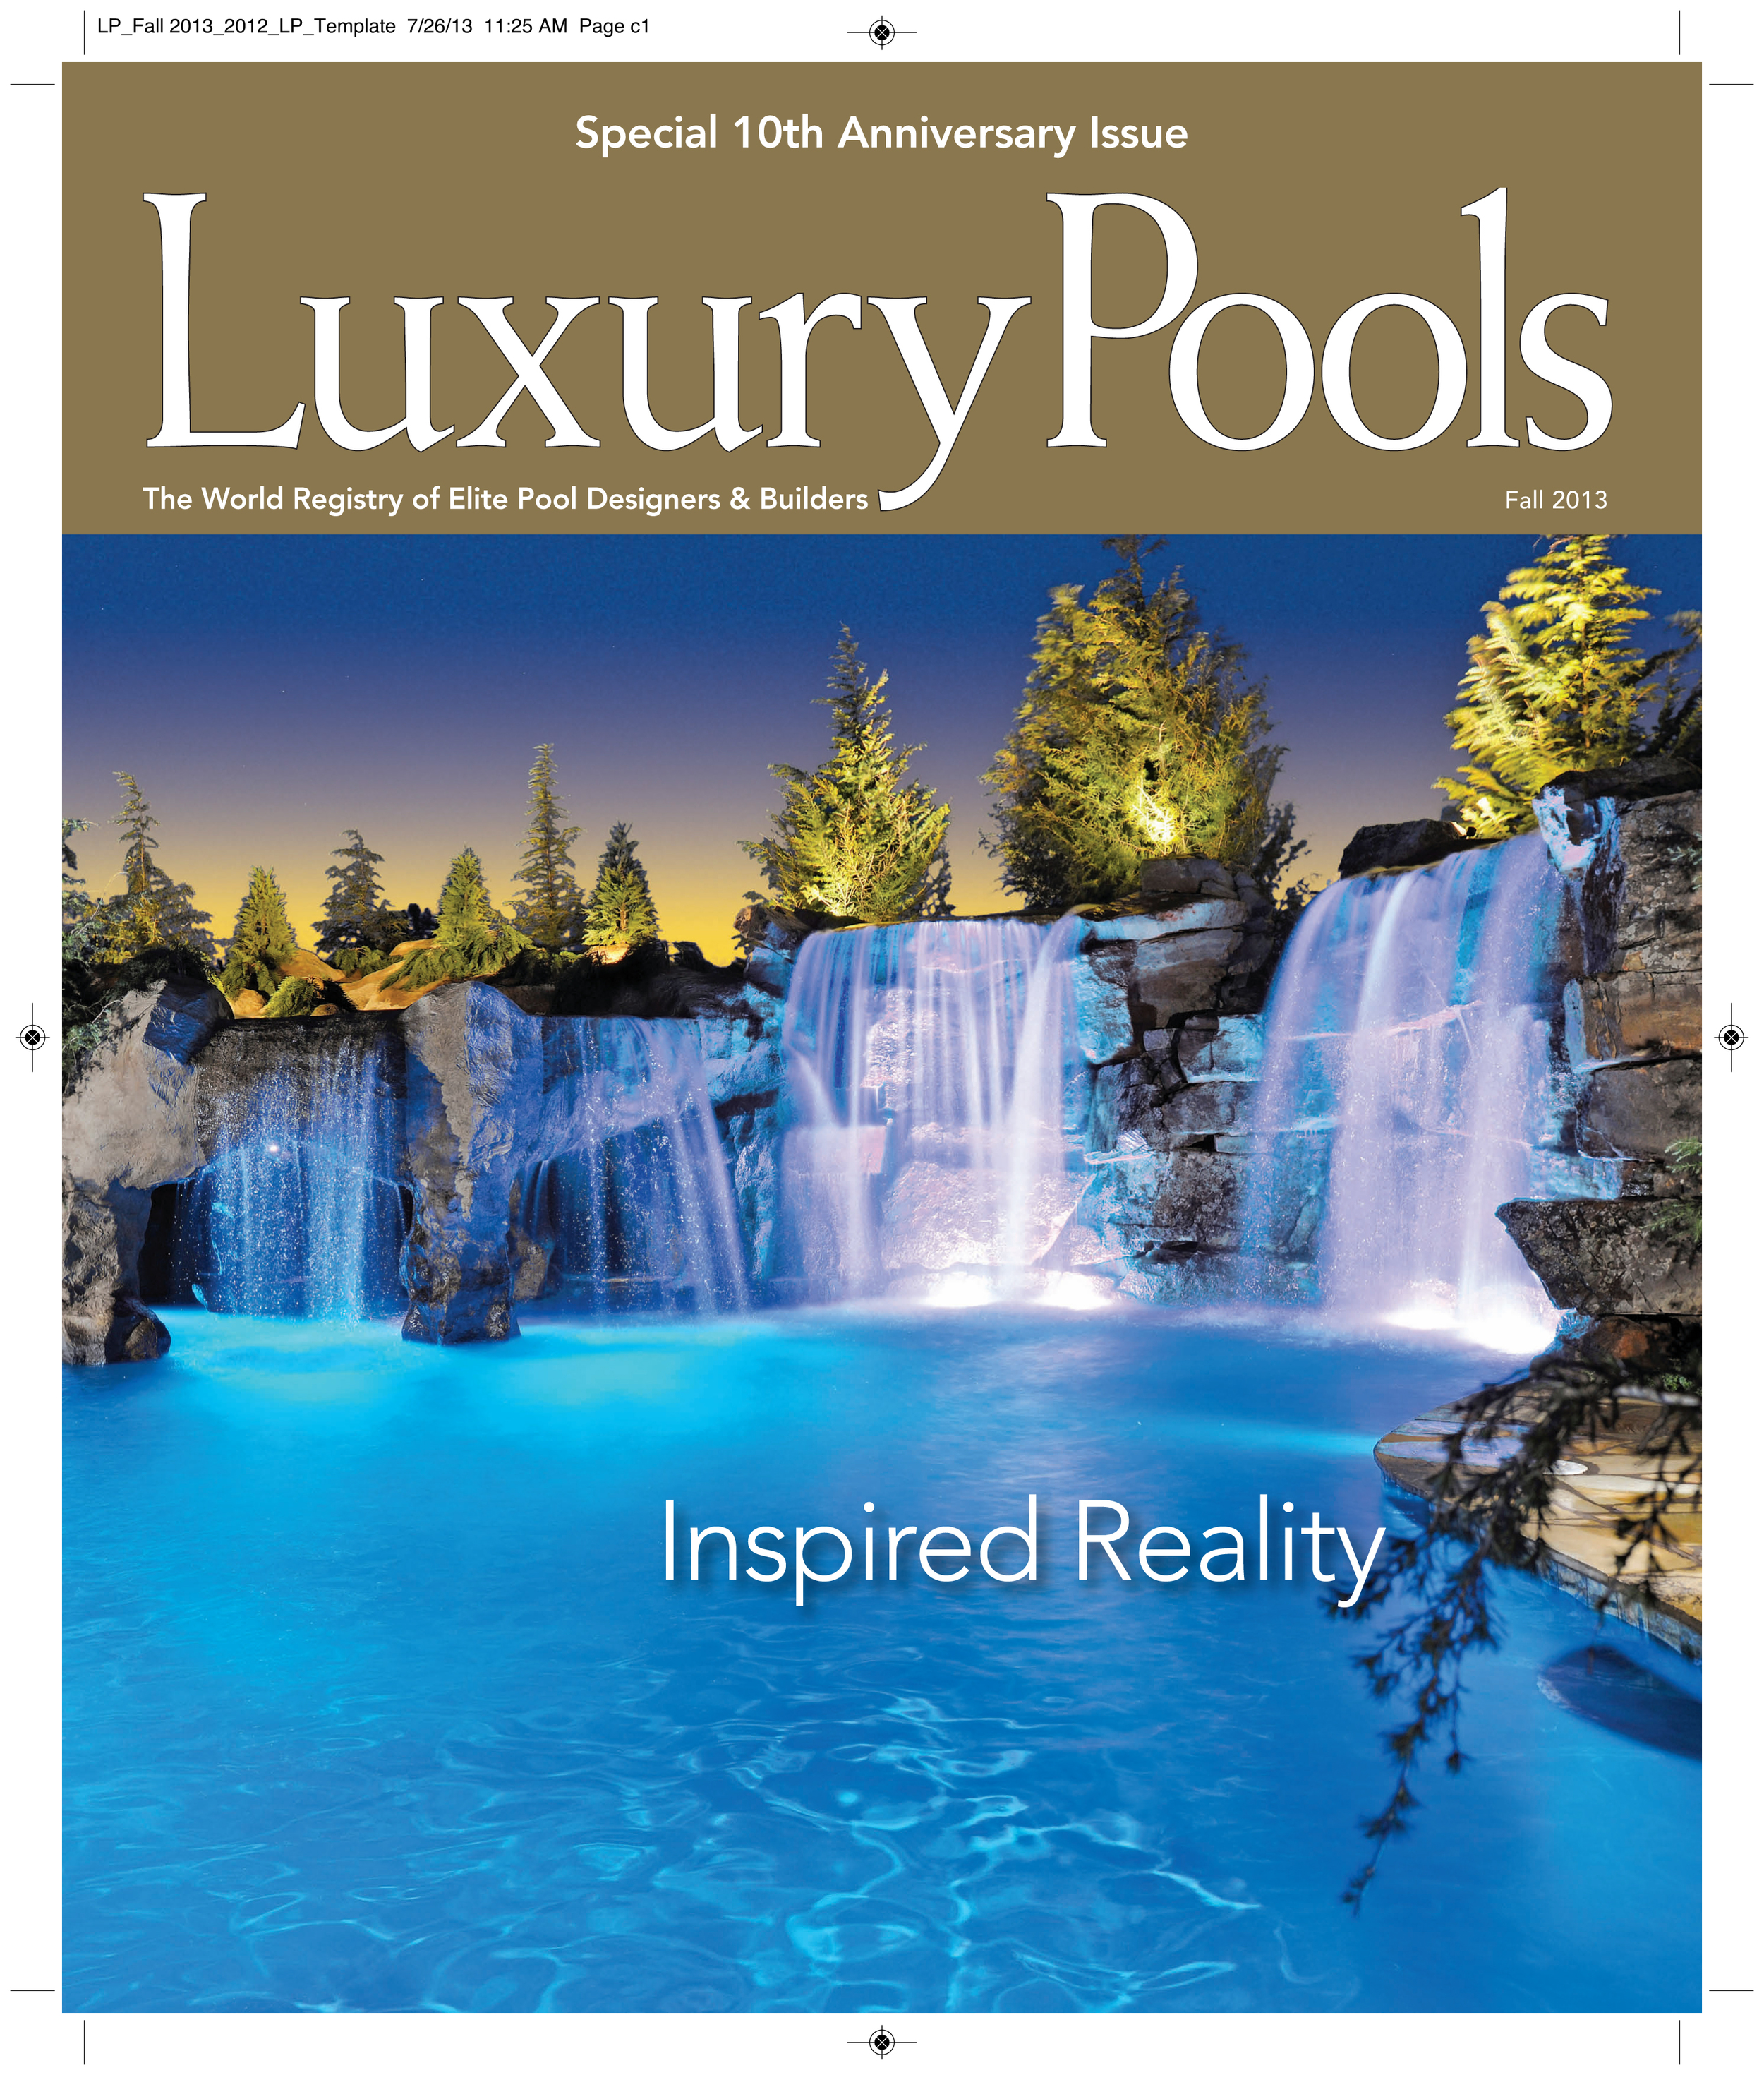 Luxury Pools 2013 Fall Cover copy.jpg